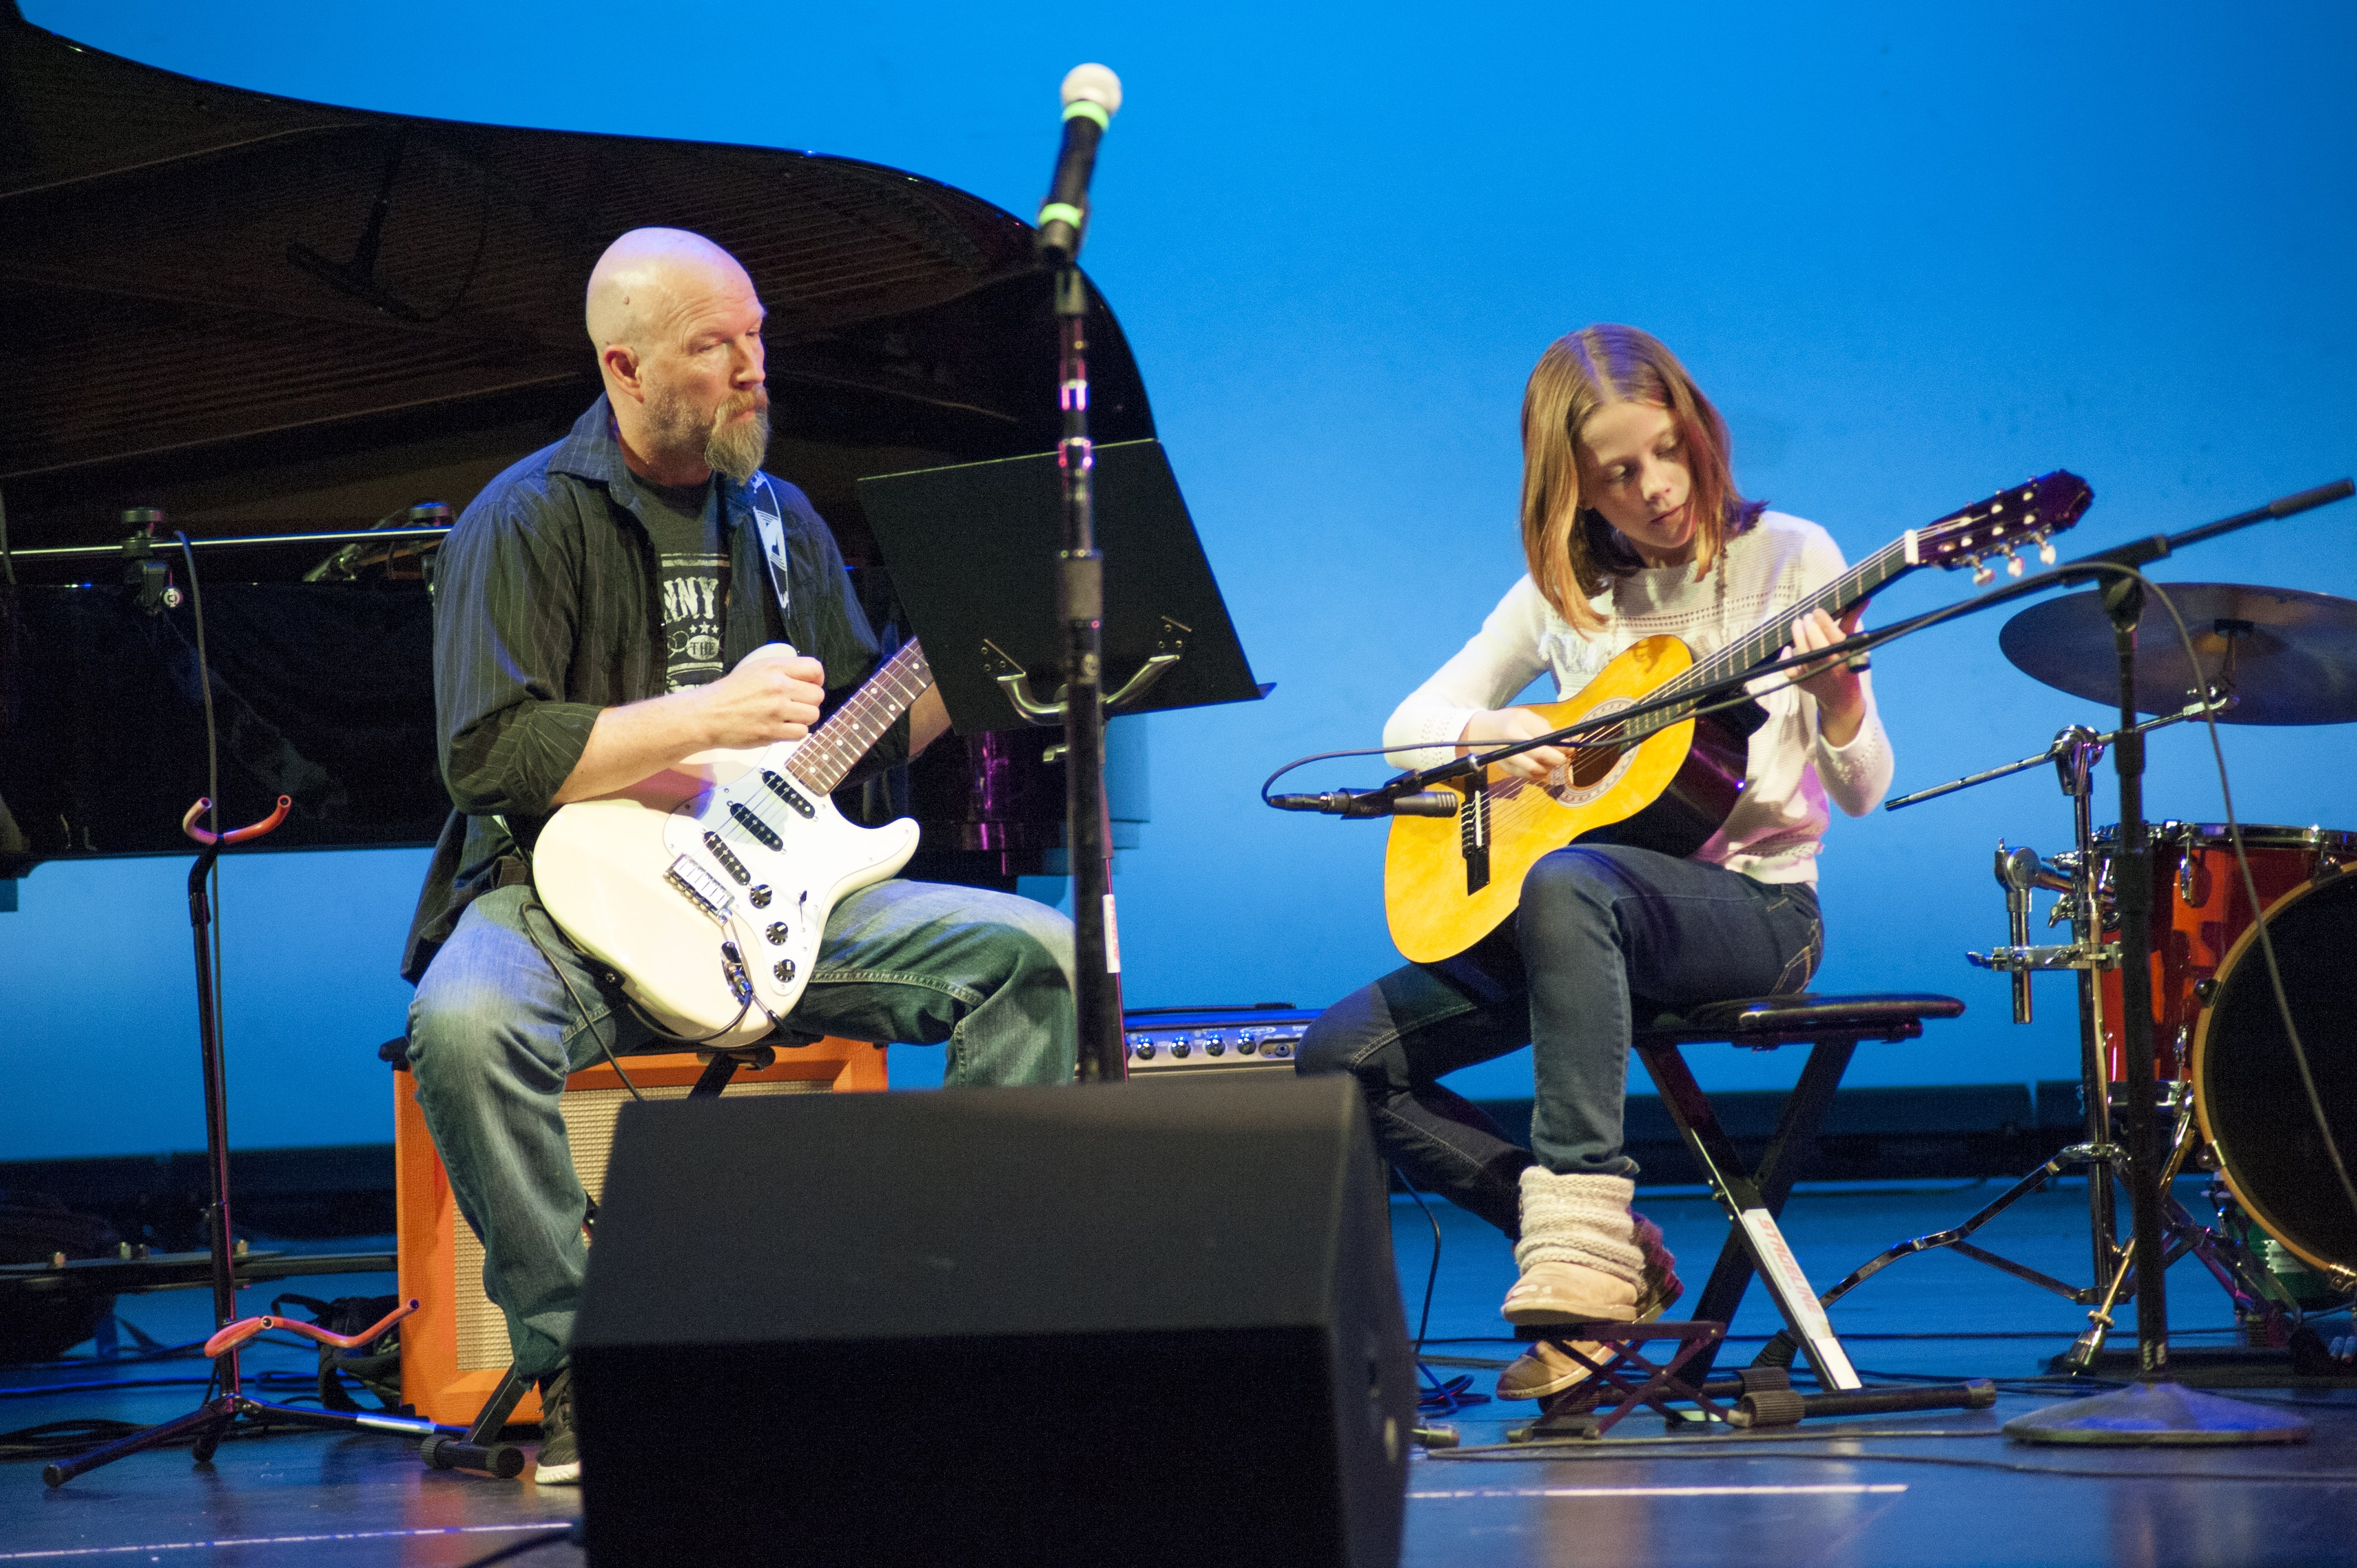 guitar lessons for kids and adults near me in castro valley ca